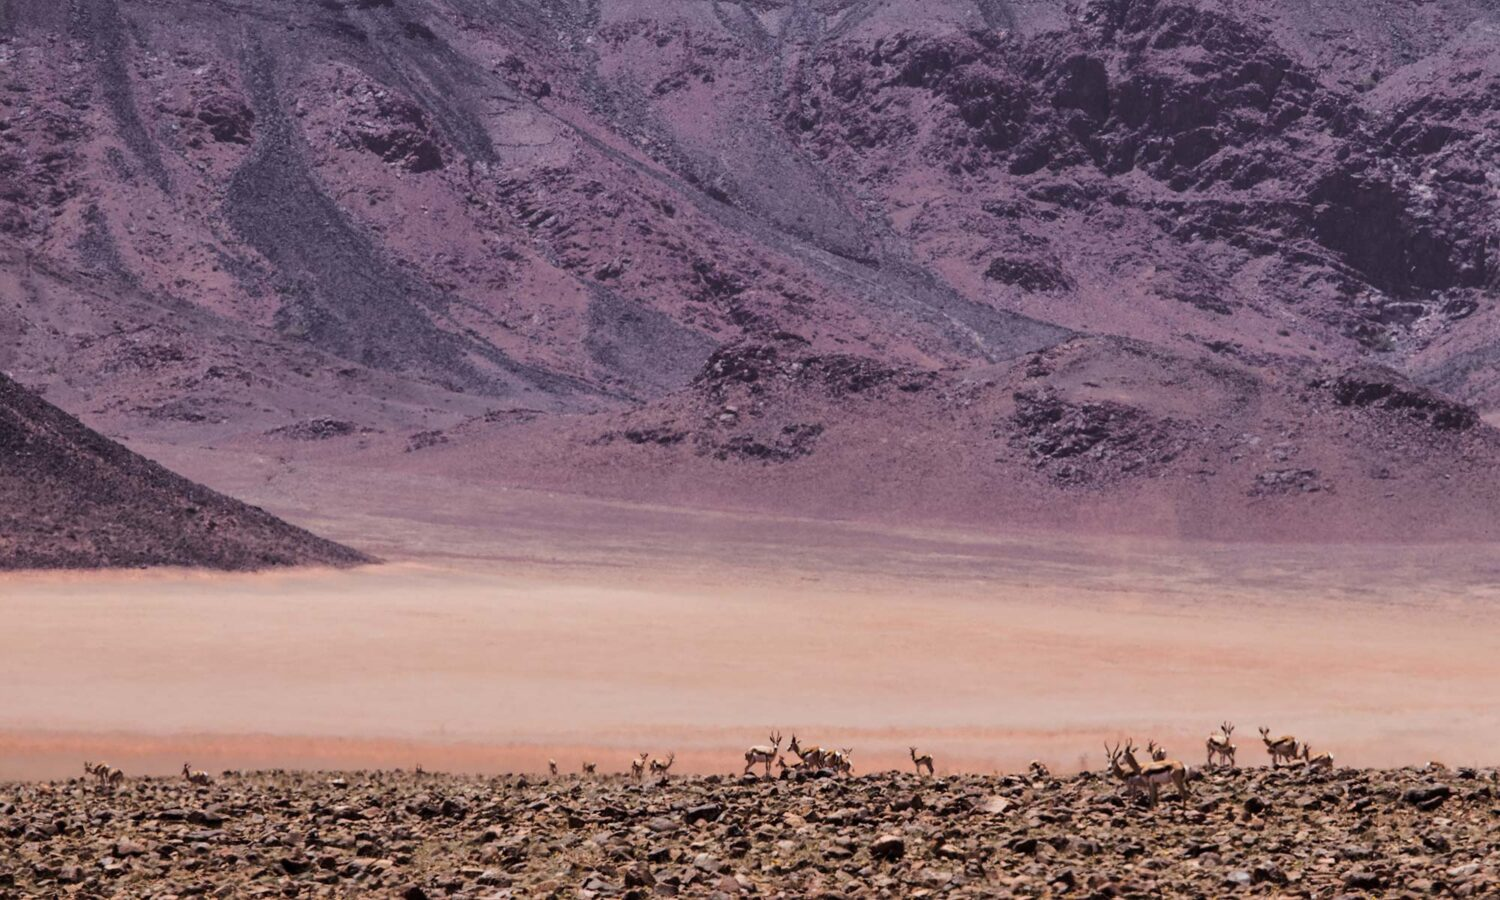 Tiny animals contrasting with imposing surrounding Namibian landscape